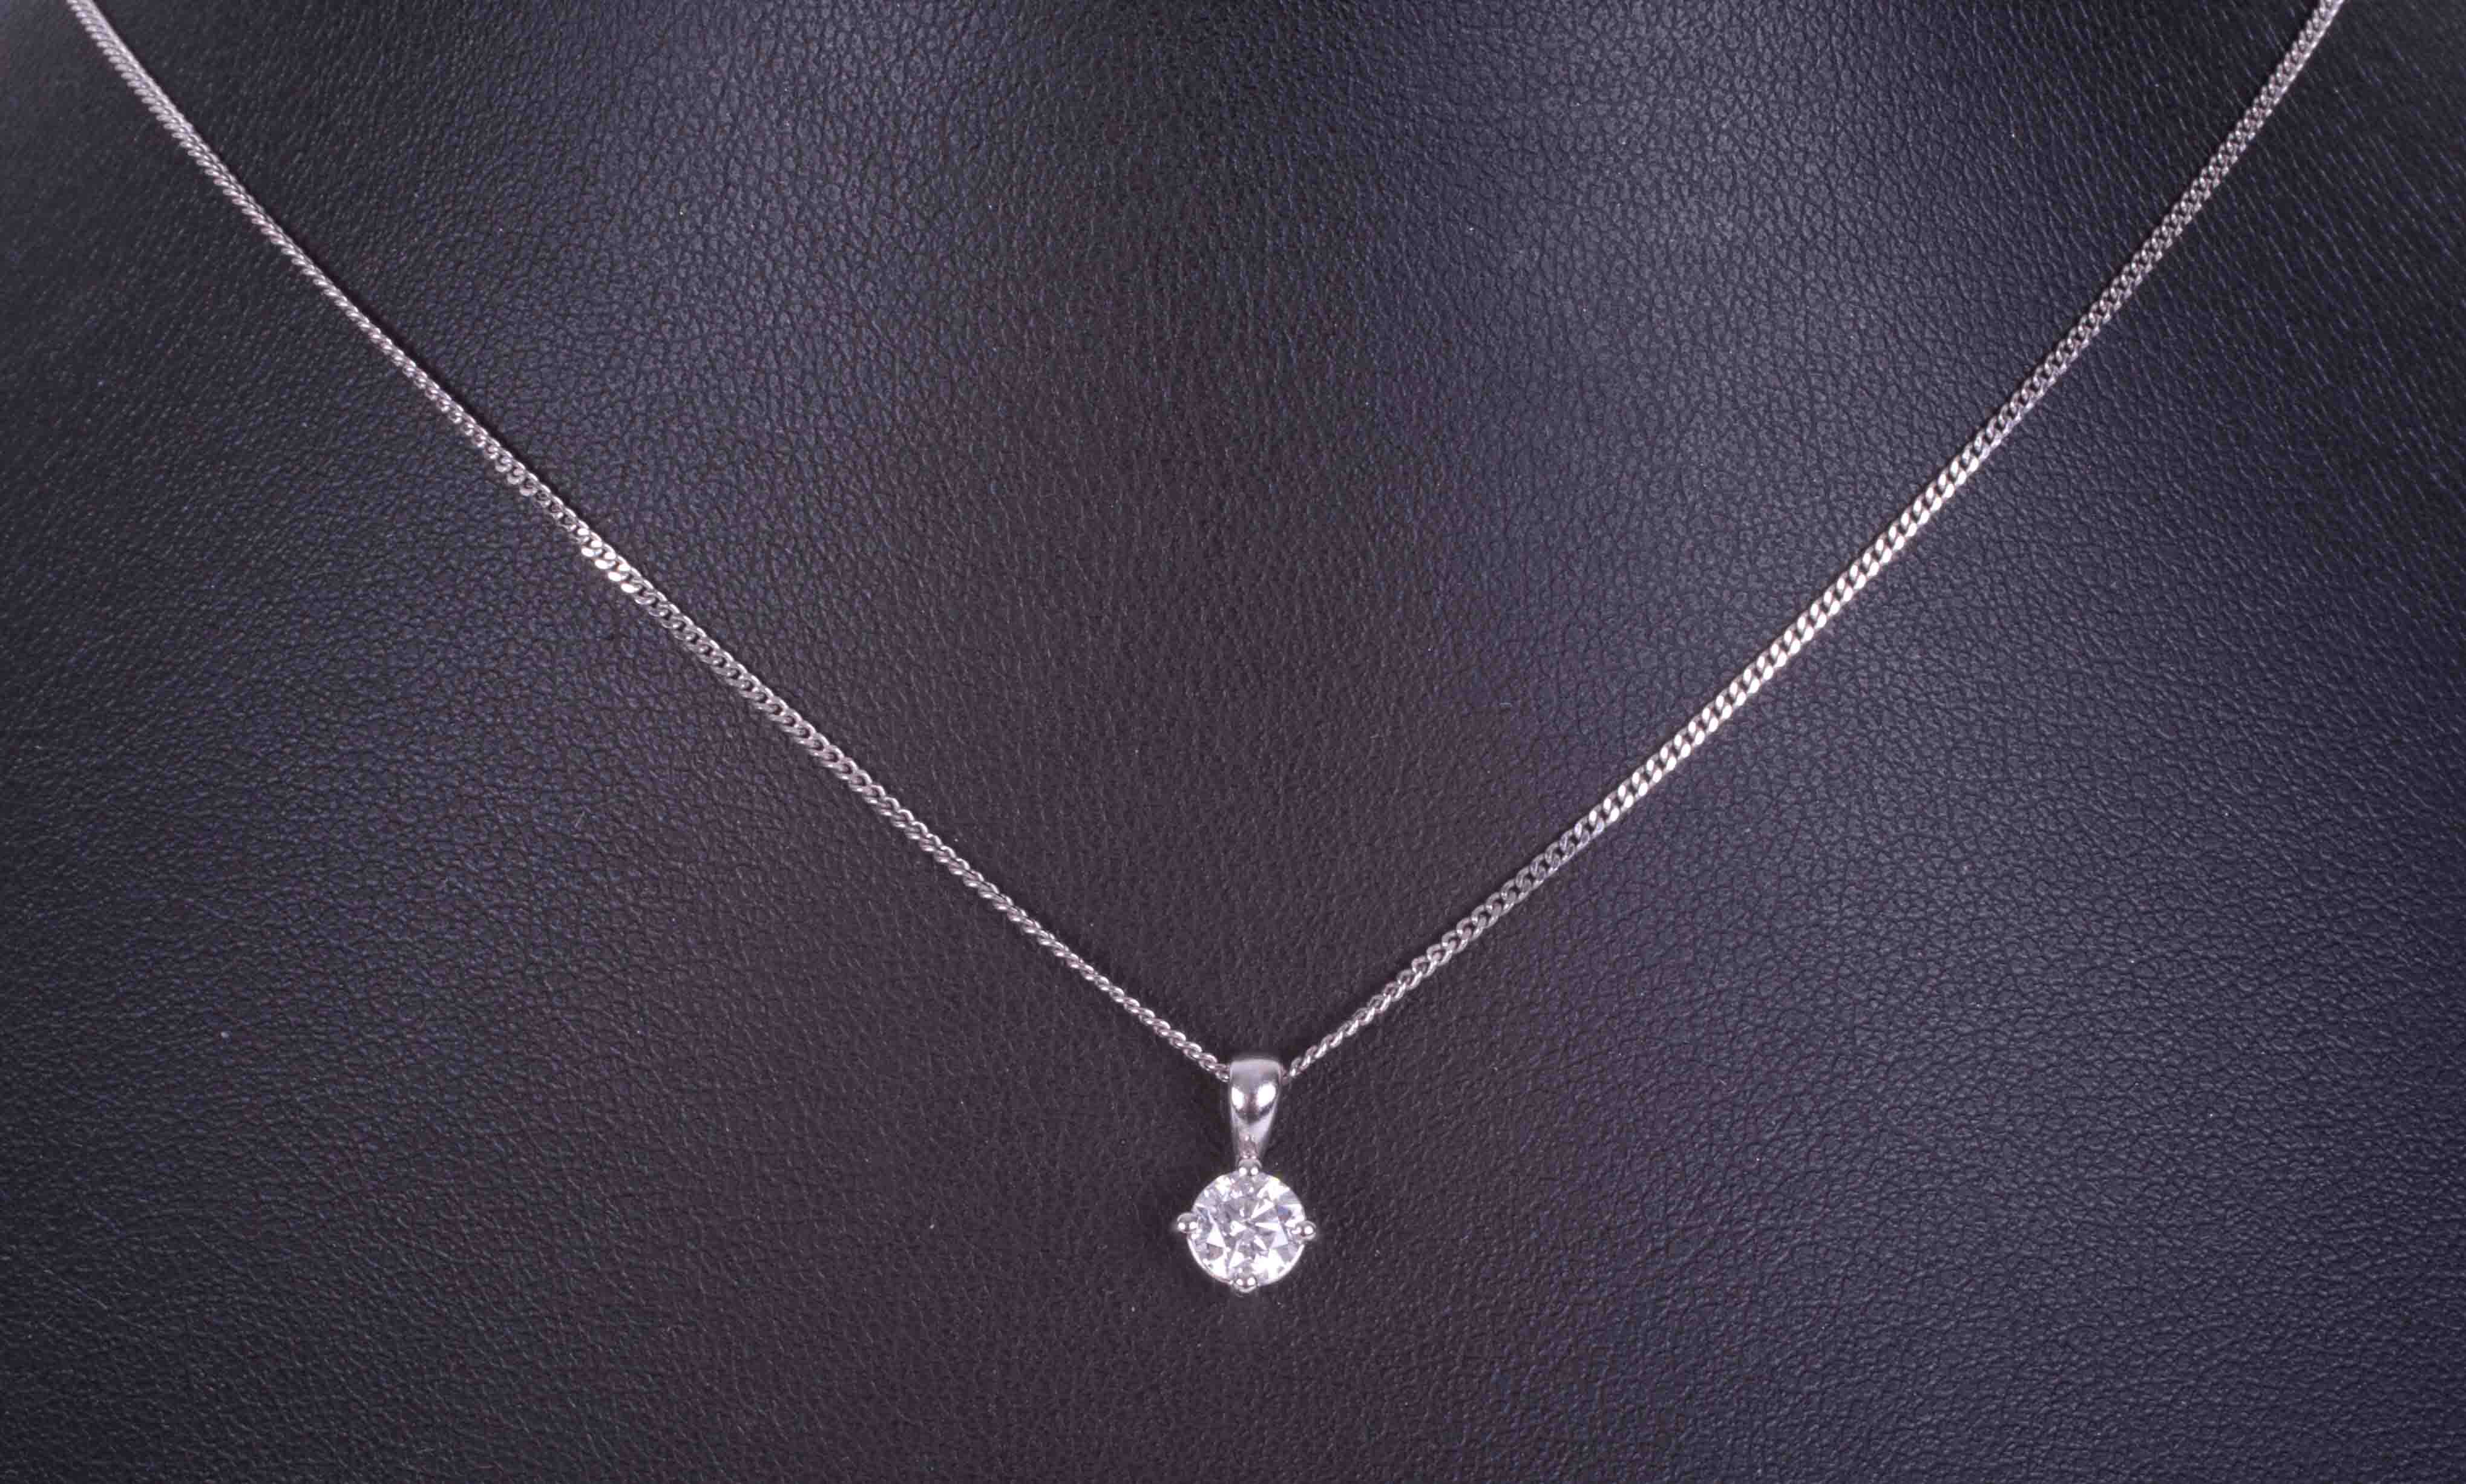 An 18ct white gold four claw pendant set approx. 0.40 carats of round brilliant cut diamond, - Image 2 of 2